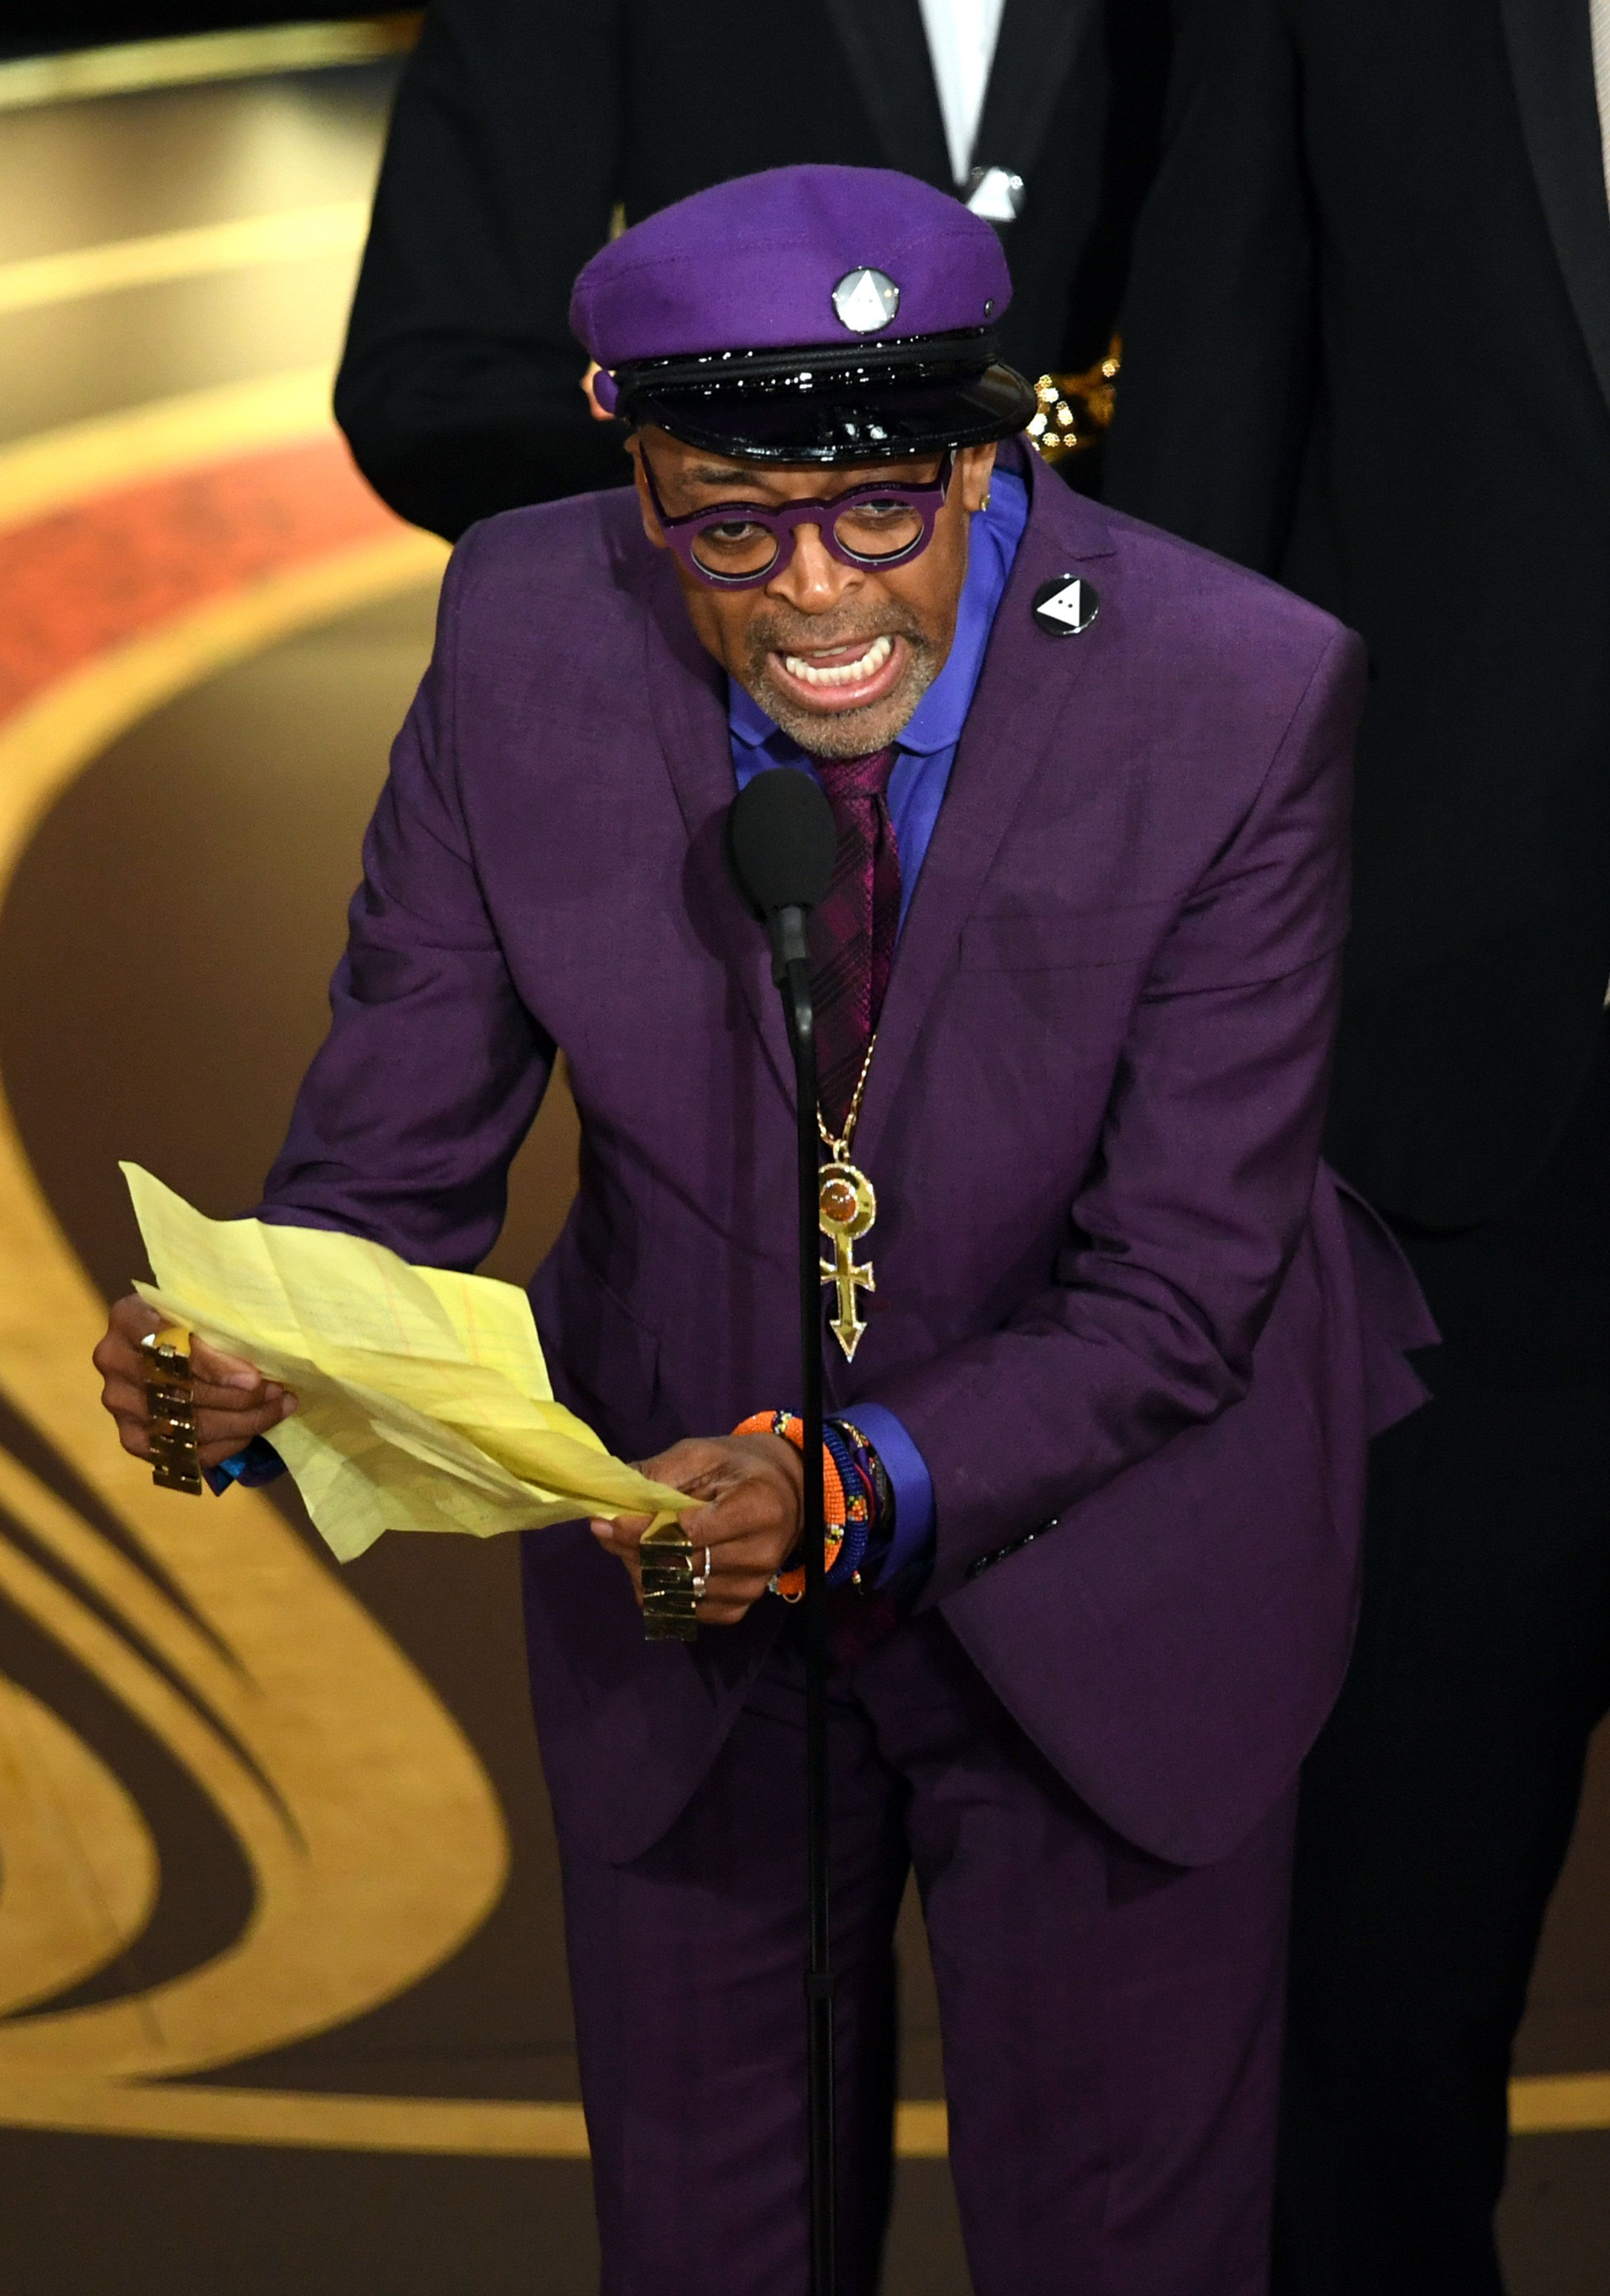 HOLLYWOOD, CALIFORNIA - FEBRUARY 24: Spike Lee accepts the Adapted Screenplay award for 'BlacKkKlansman' onstage during the 91st Annual Academy Awards at Dolby Theatre on February 24, 2019 in Hollywood, California. (Photo by Kevin Winter/Getty Images)